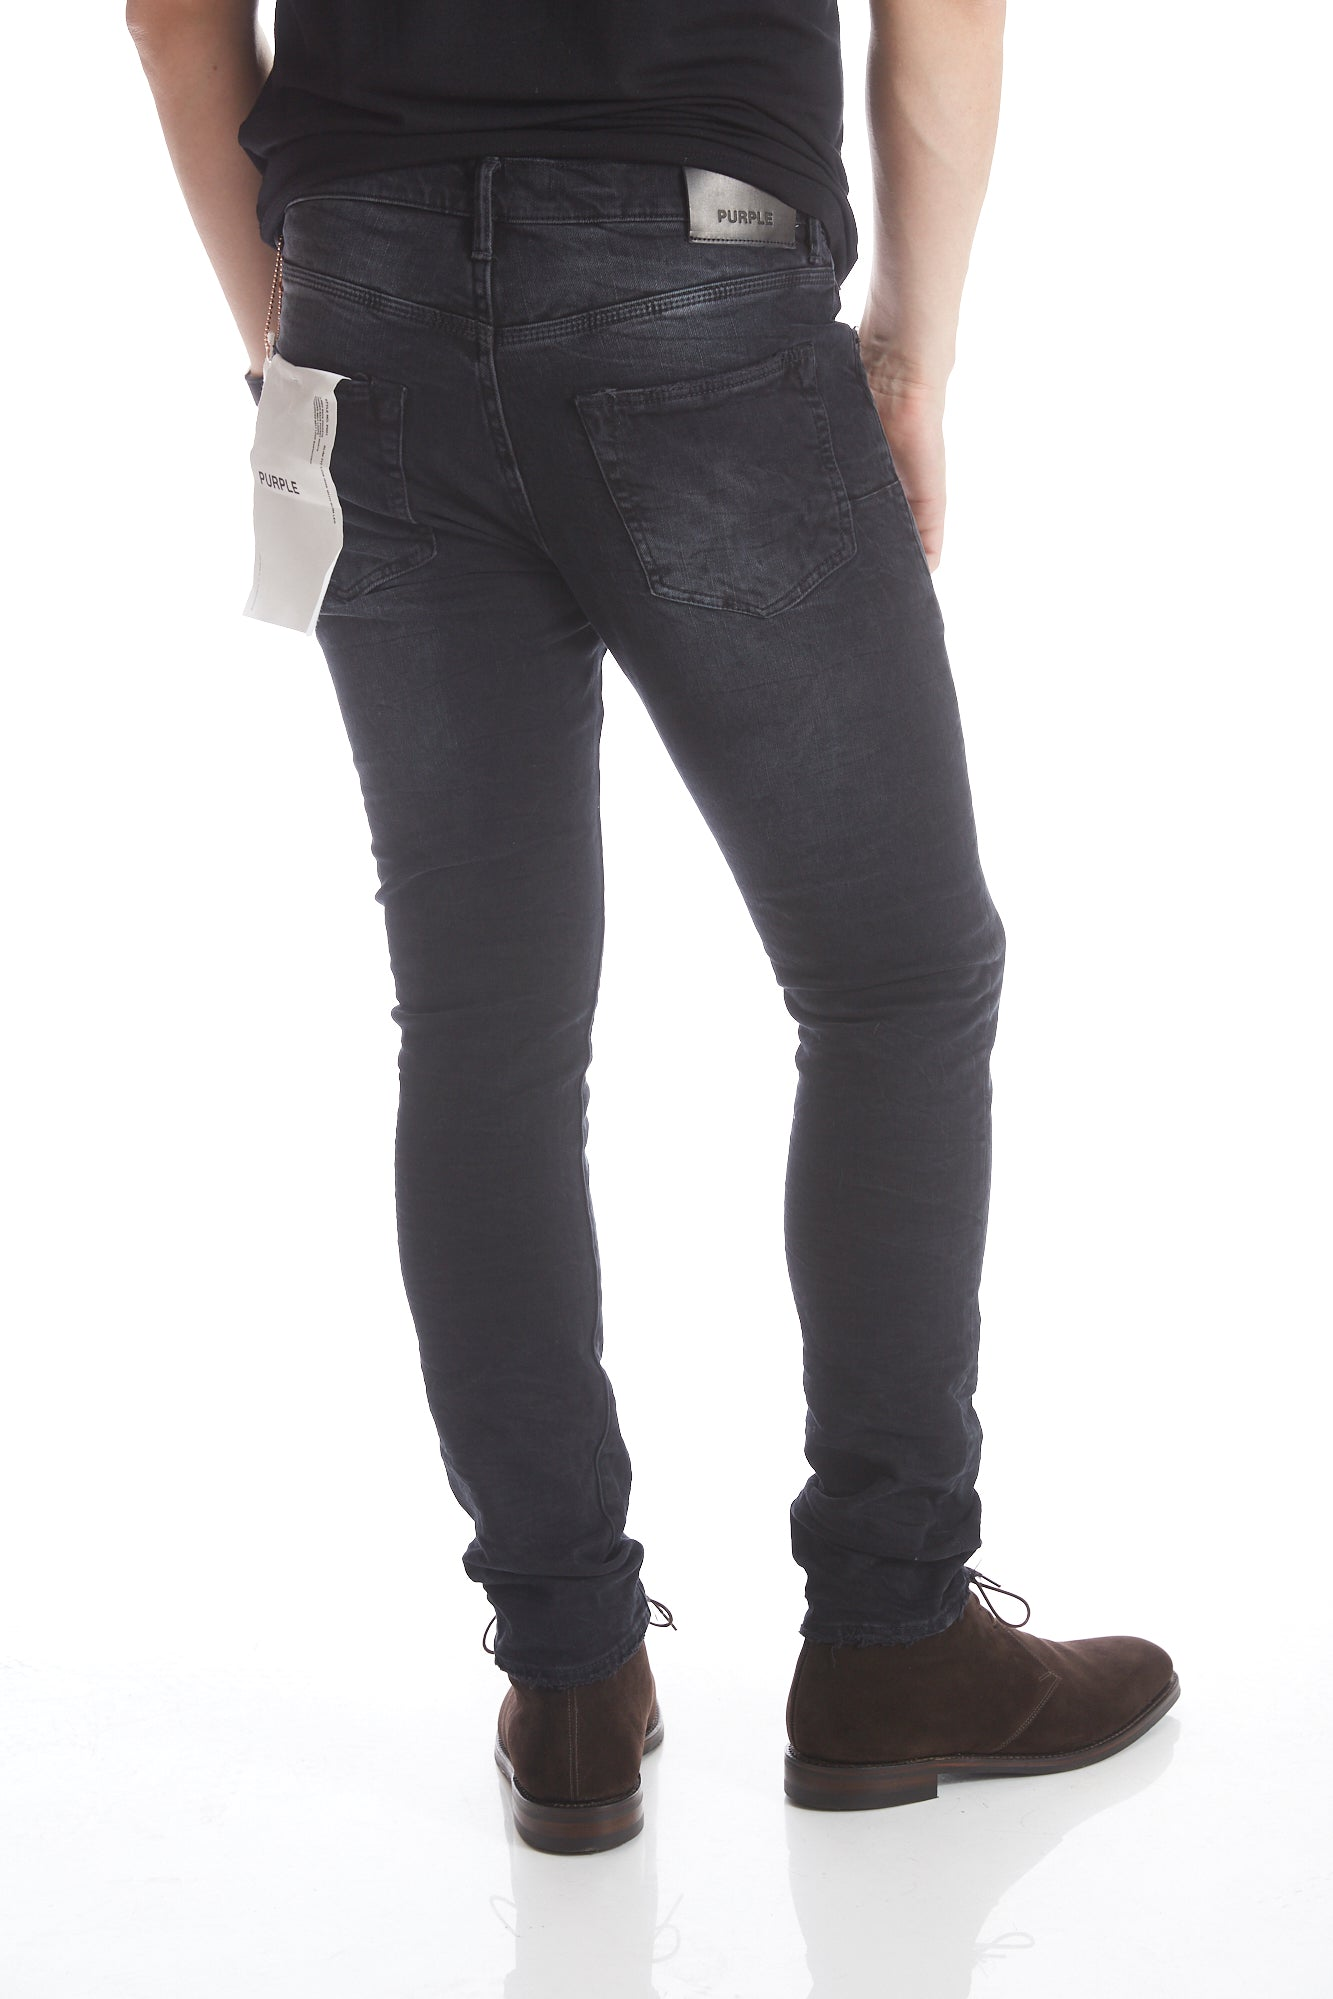 Purple Brand P001 Slim Leg Black Wash Jeans